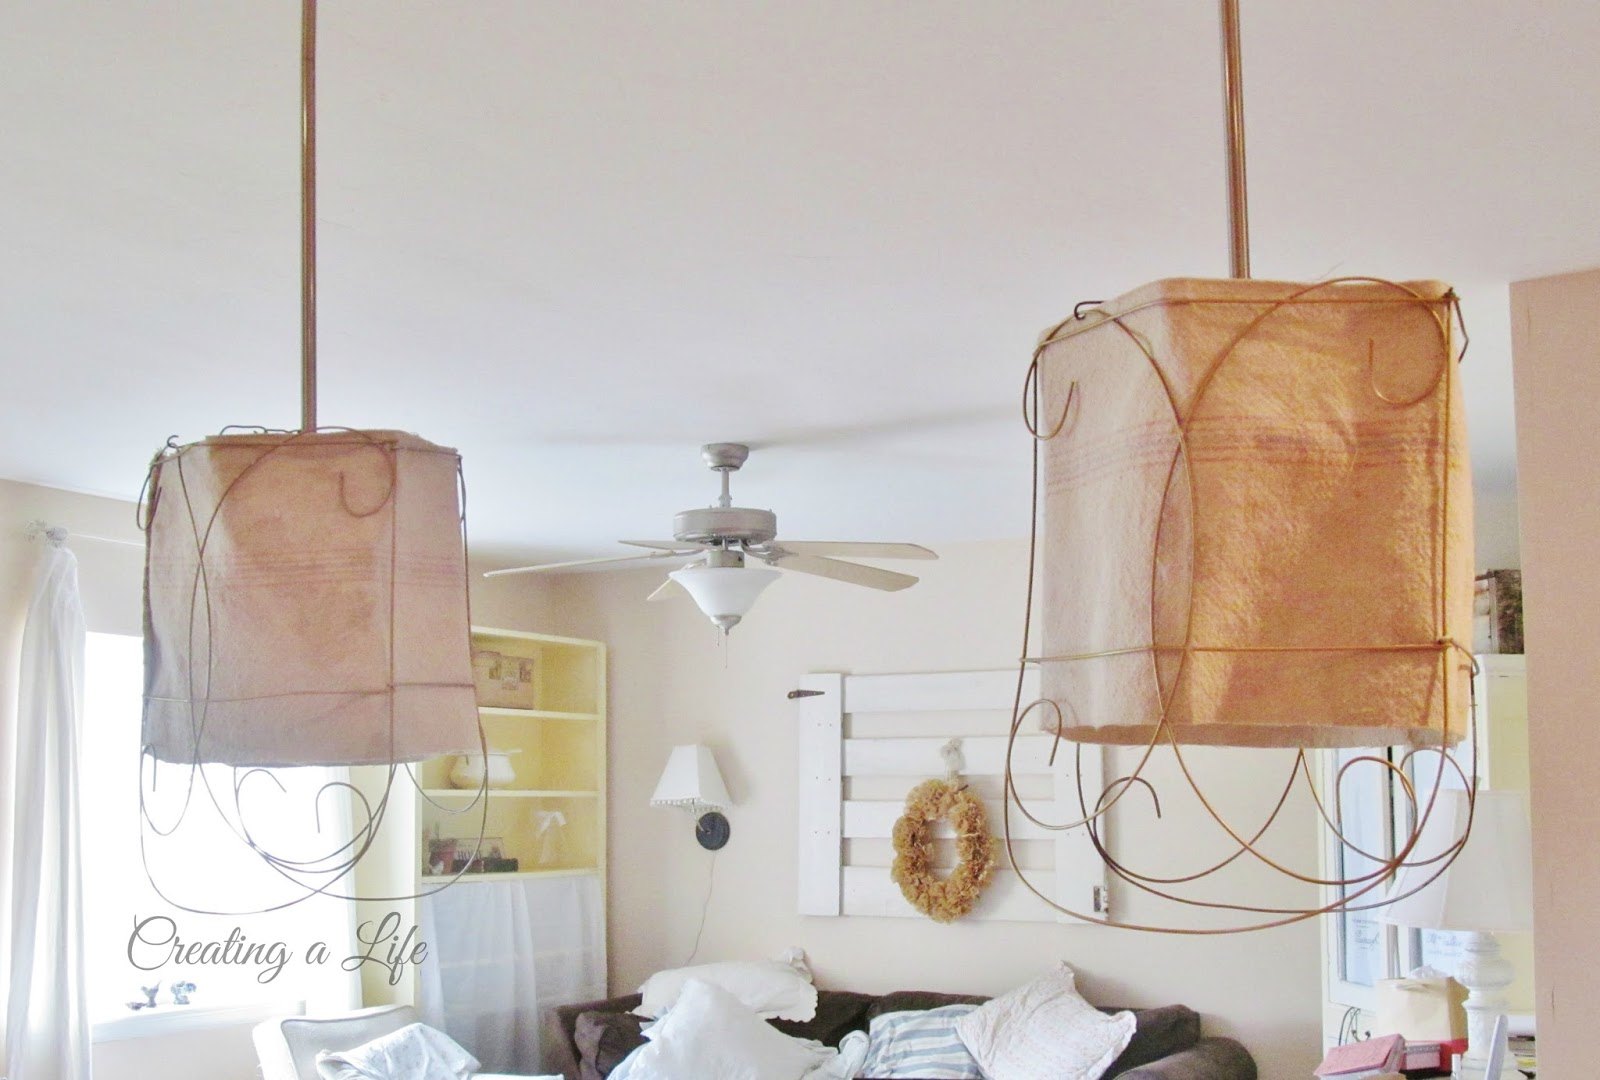 Creating A Life Rustic Farmhouse Style Pendant Light Shades